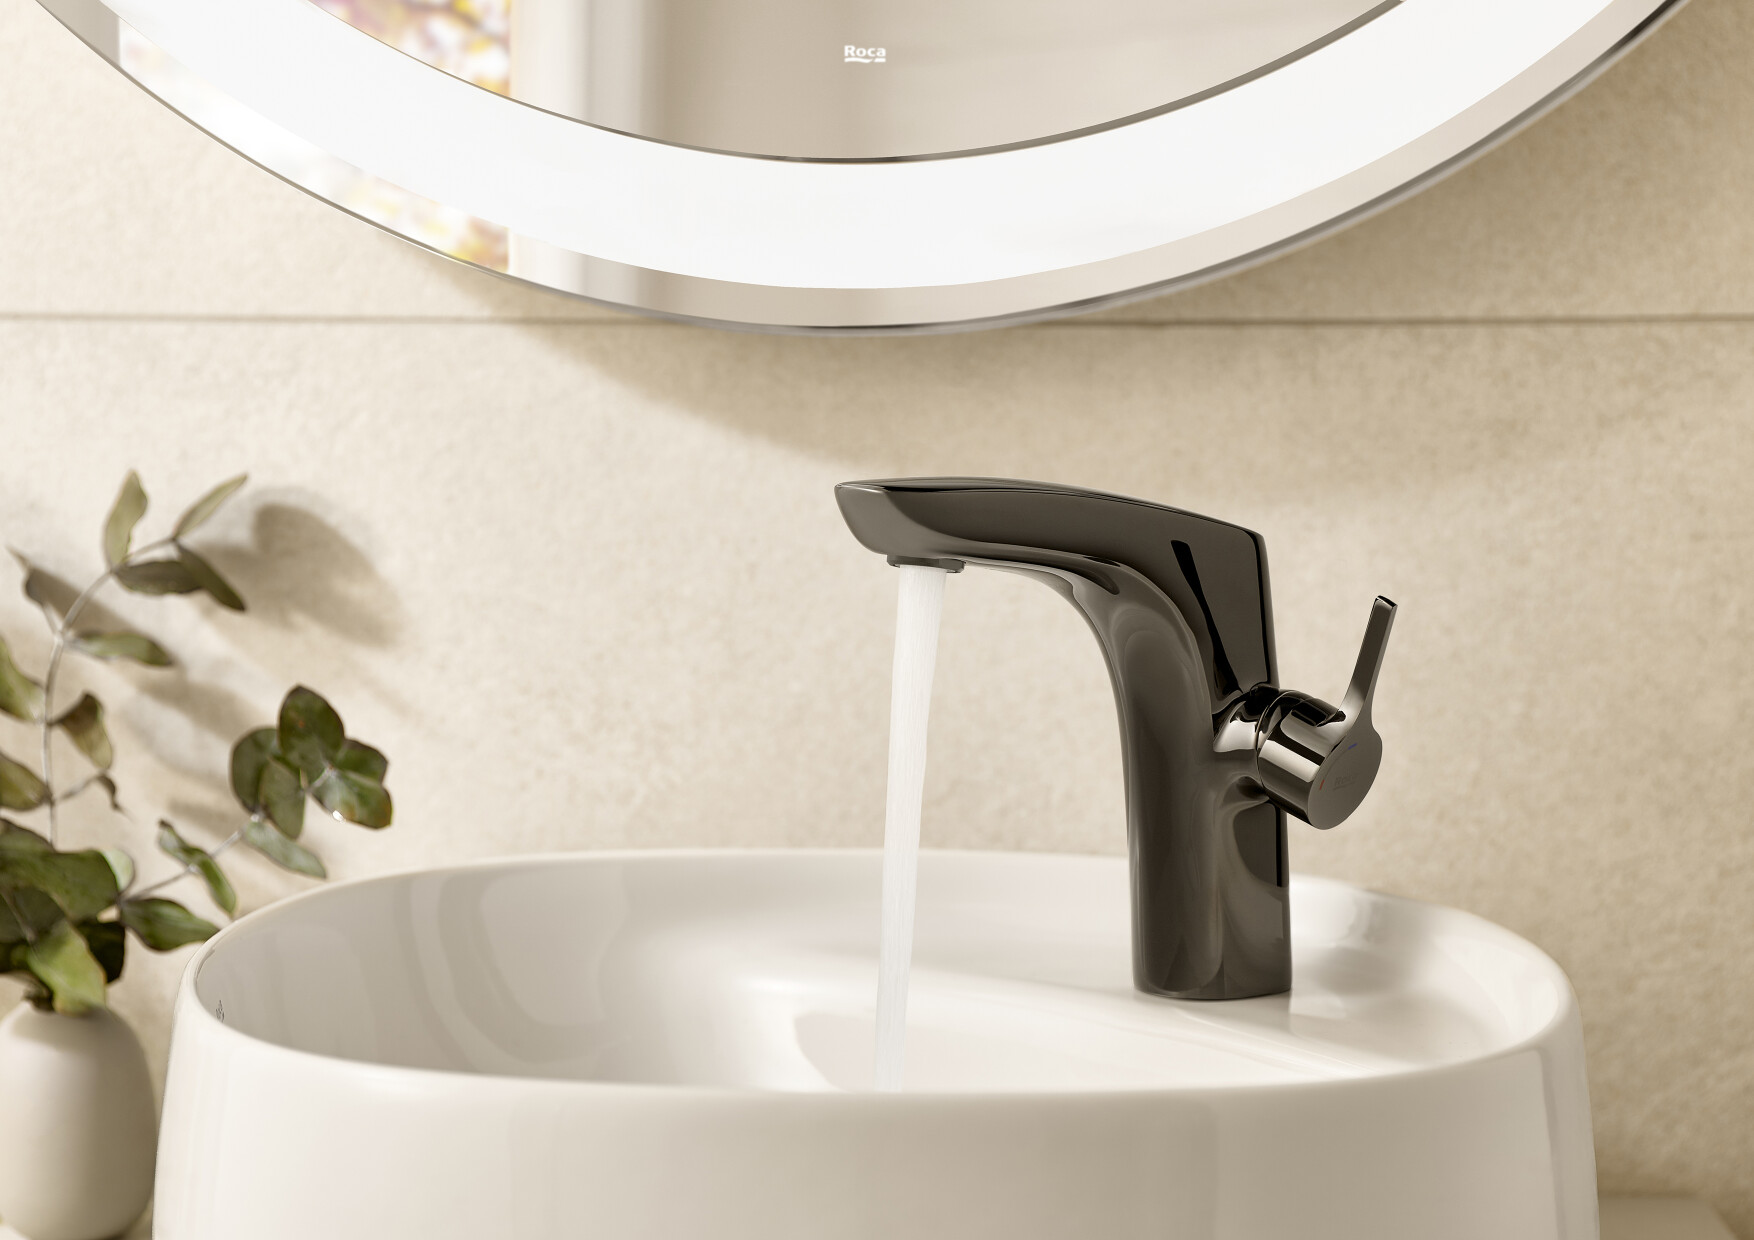 Specifying Water Efficient Design for the Hotel Industry